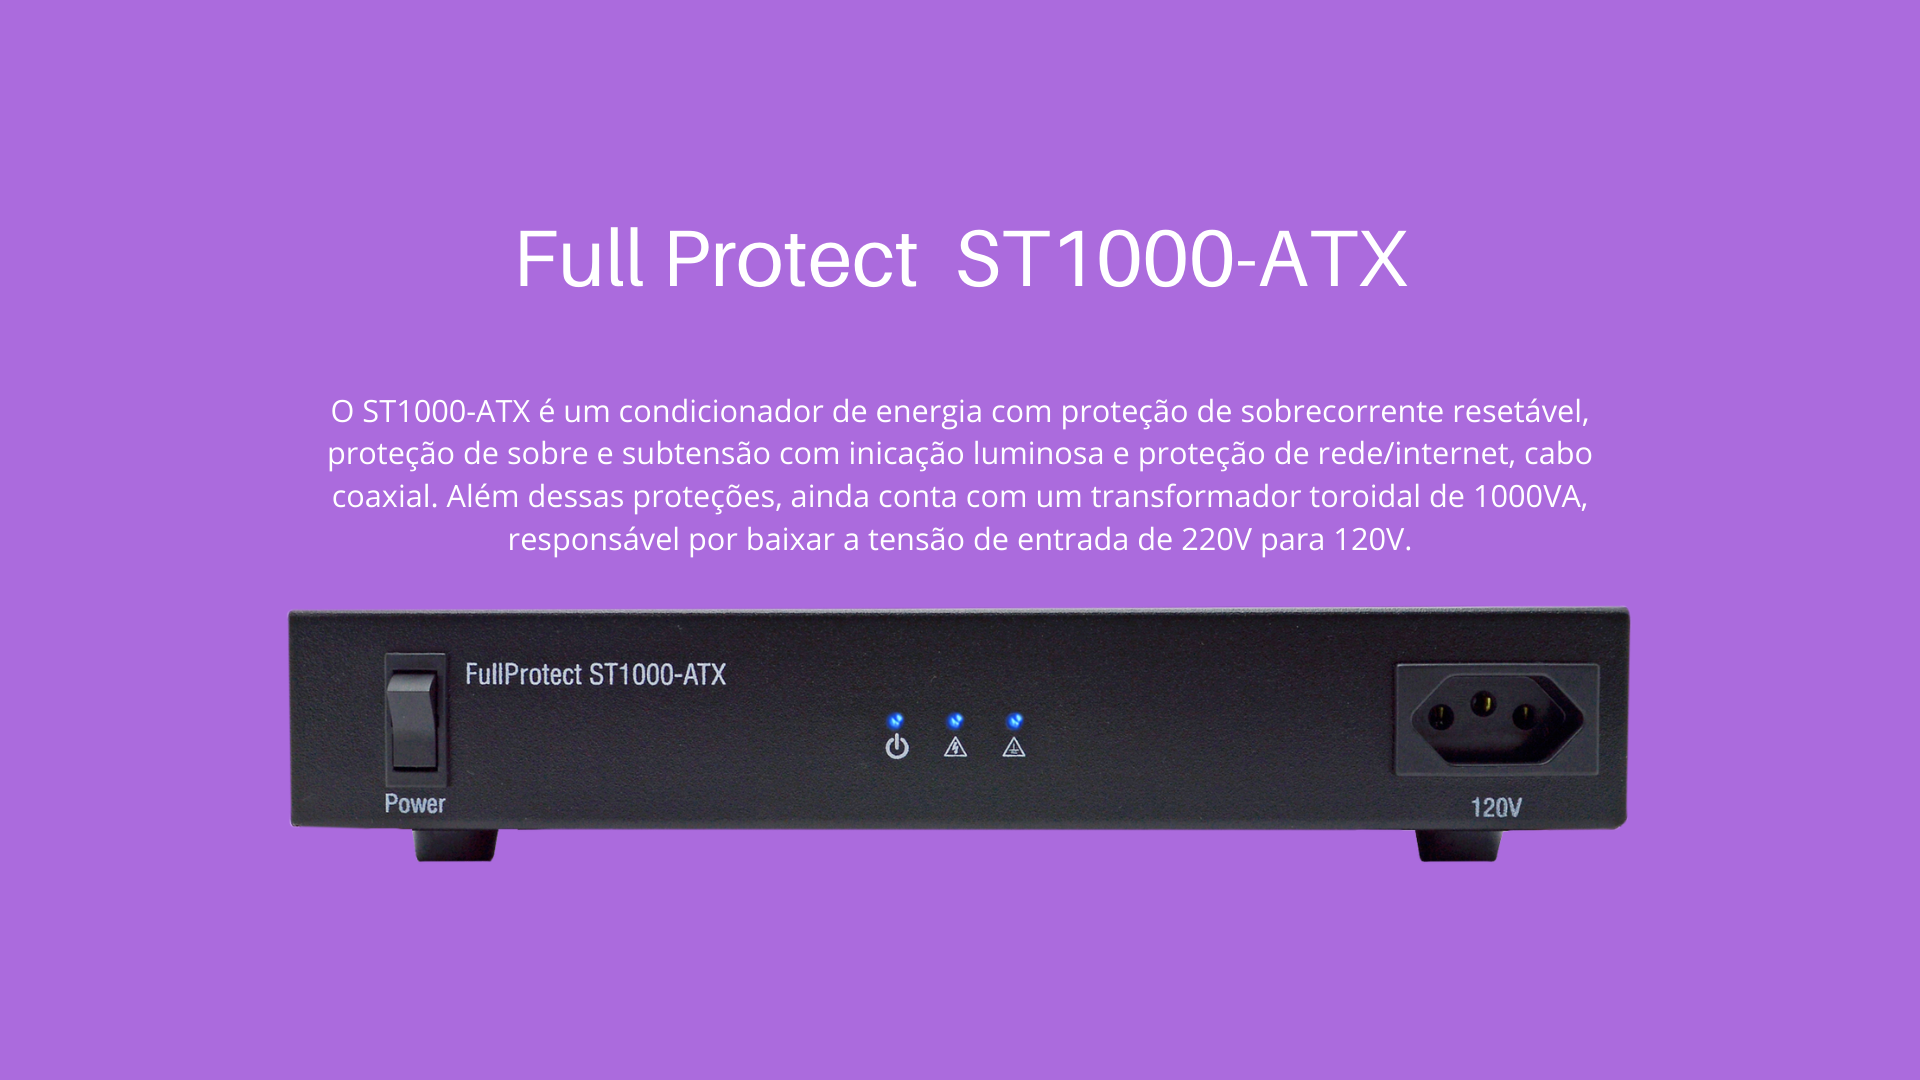 Full Protect ST1000